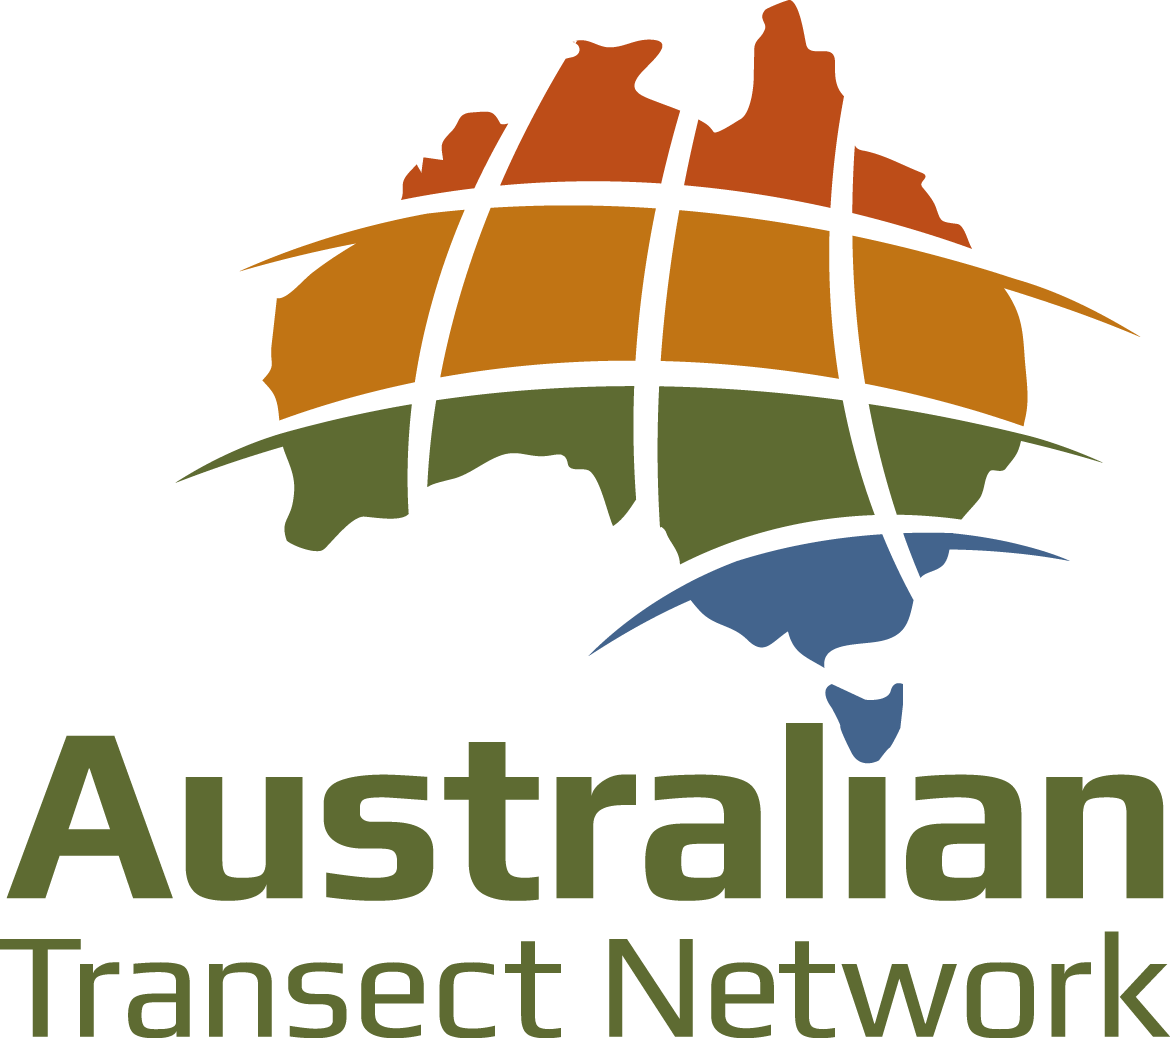 [The logo of Australian Transect Network project.]